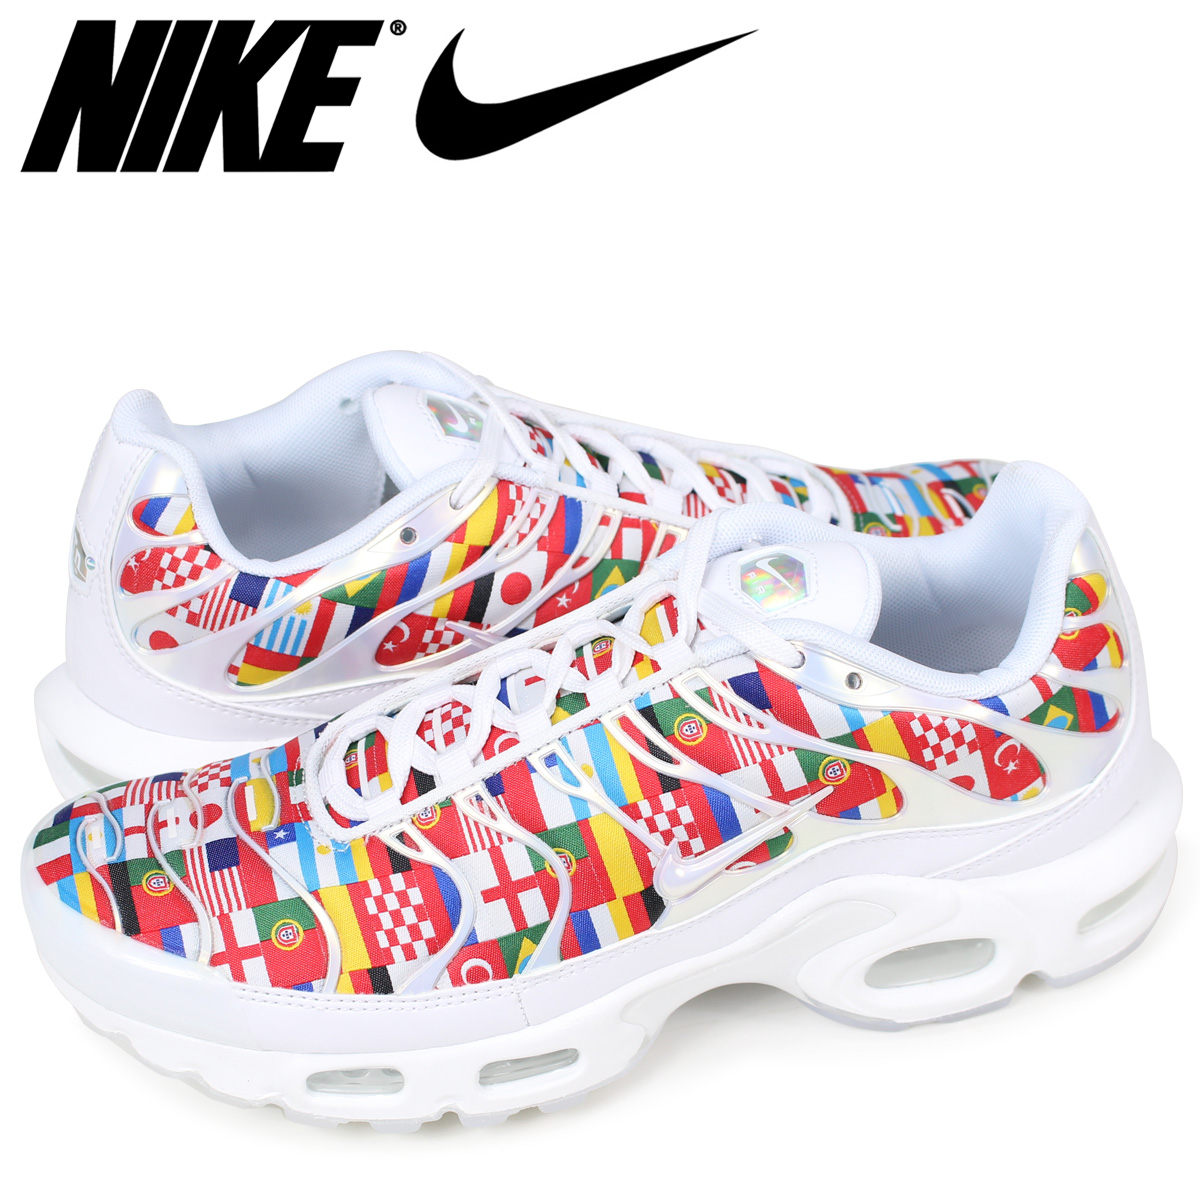 abcf7f75e426d6 Nike NIKE Air Max plus sneakers men AIR MAX PLUS NIC QS AO5117-100 white   load planned Shinnyu load in reservation product 6 16 containing